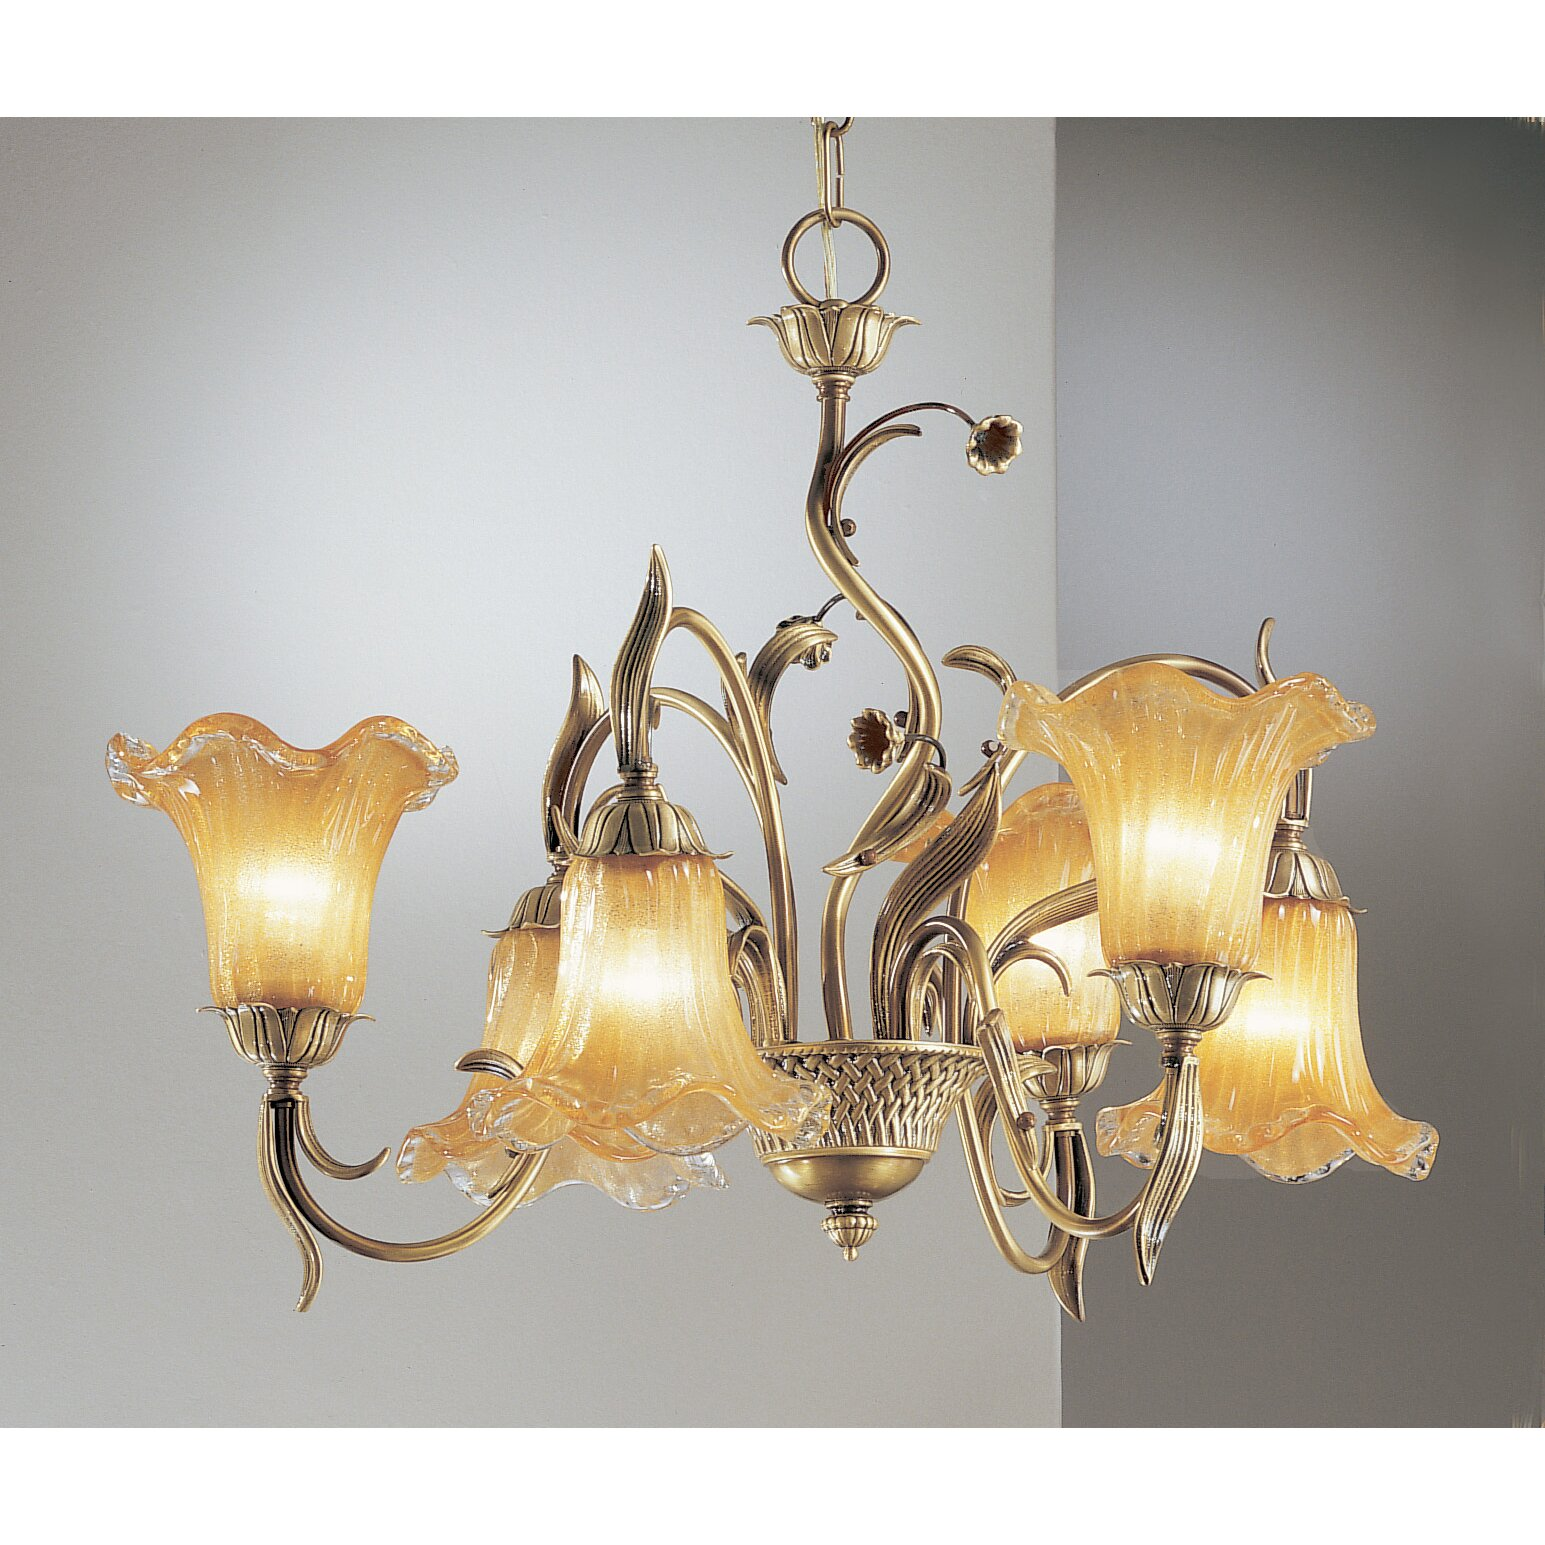 Classic Lighting Venezia Up And Down 6 Light Shaded